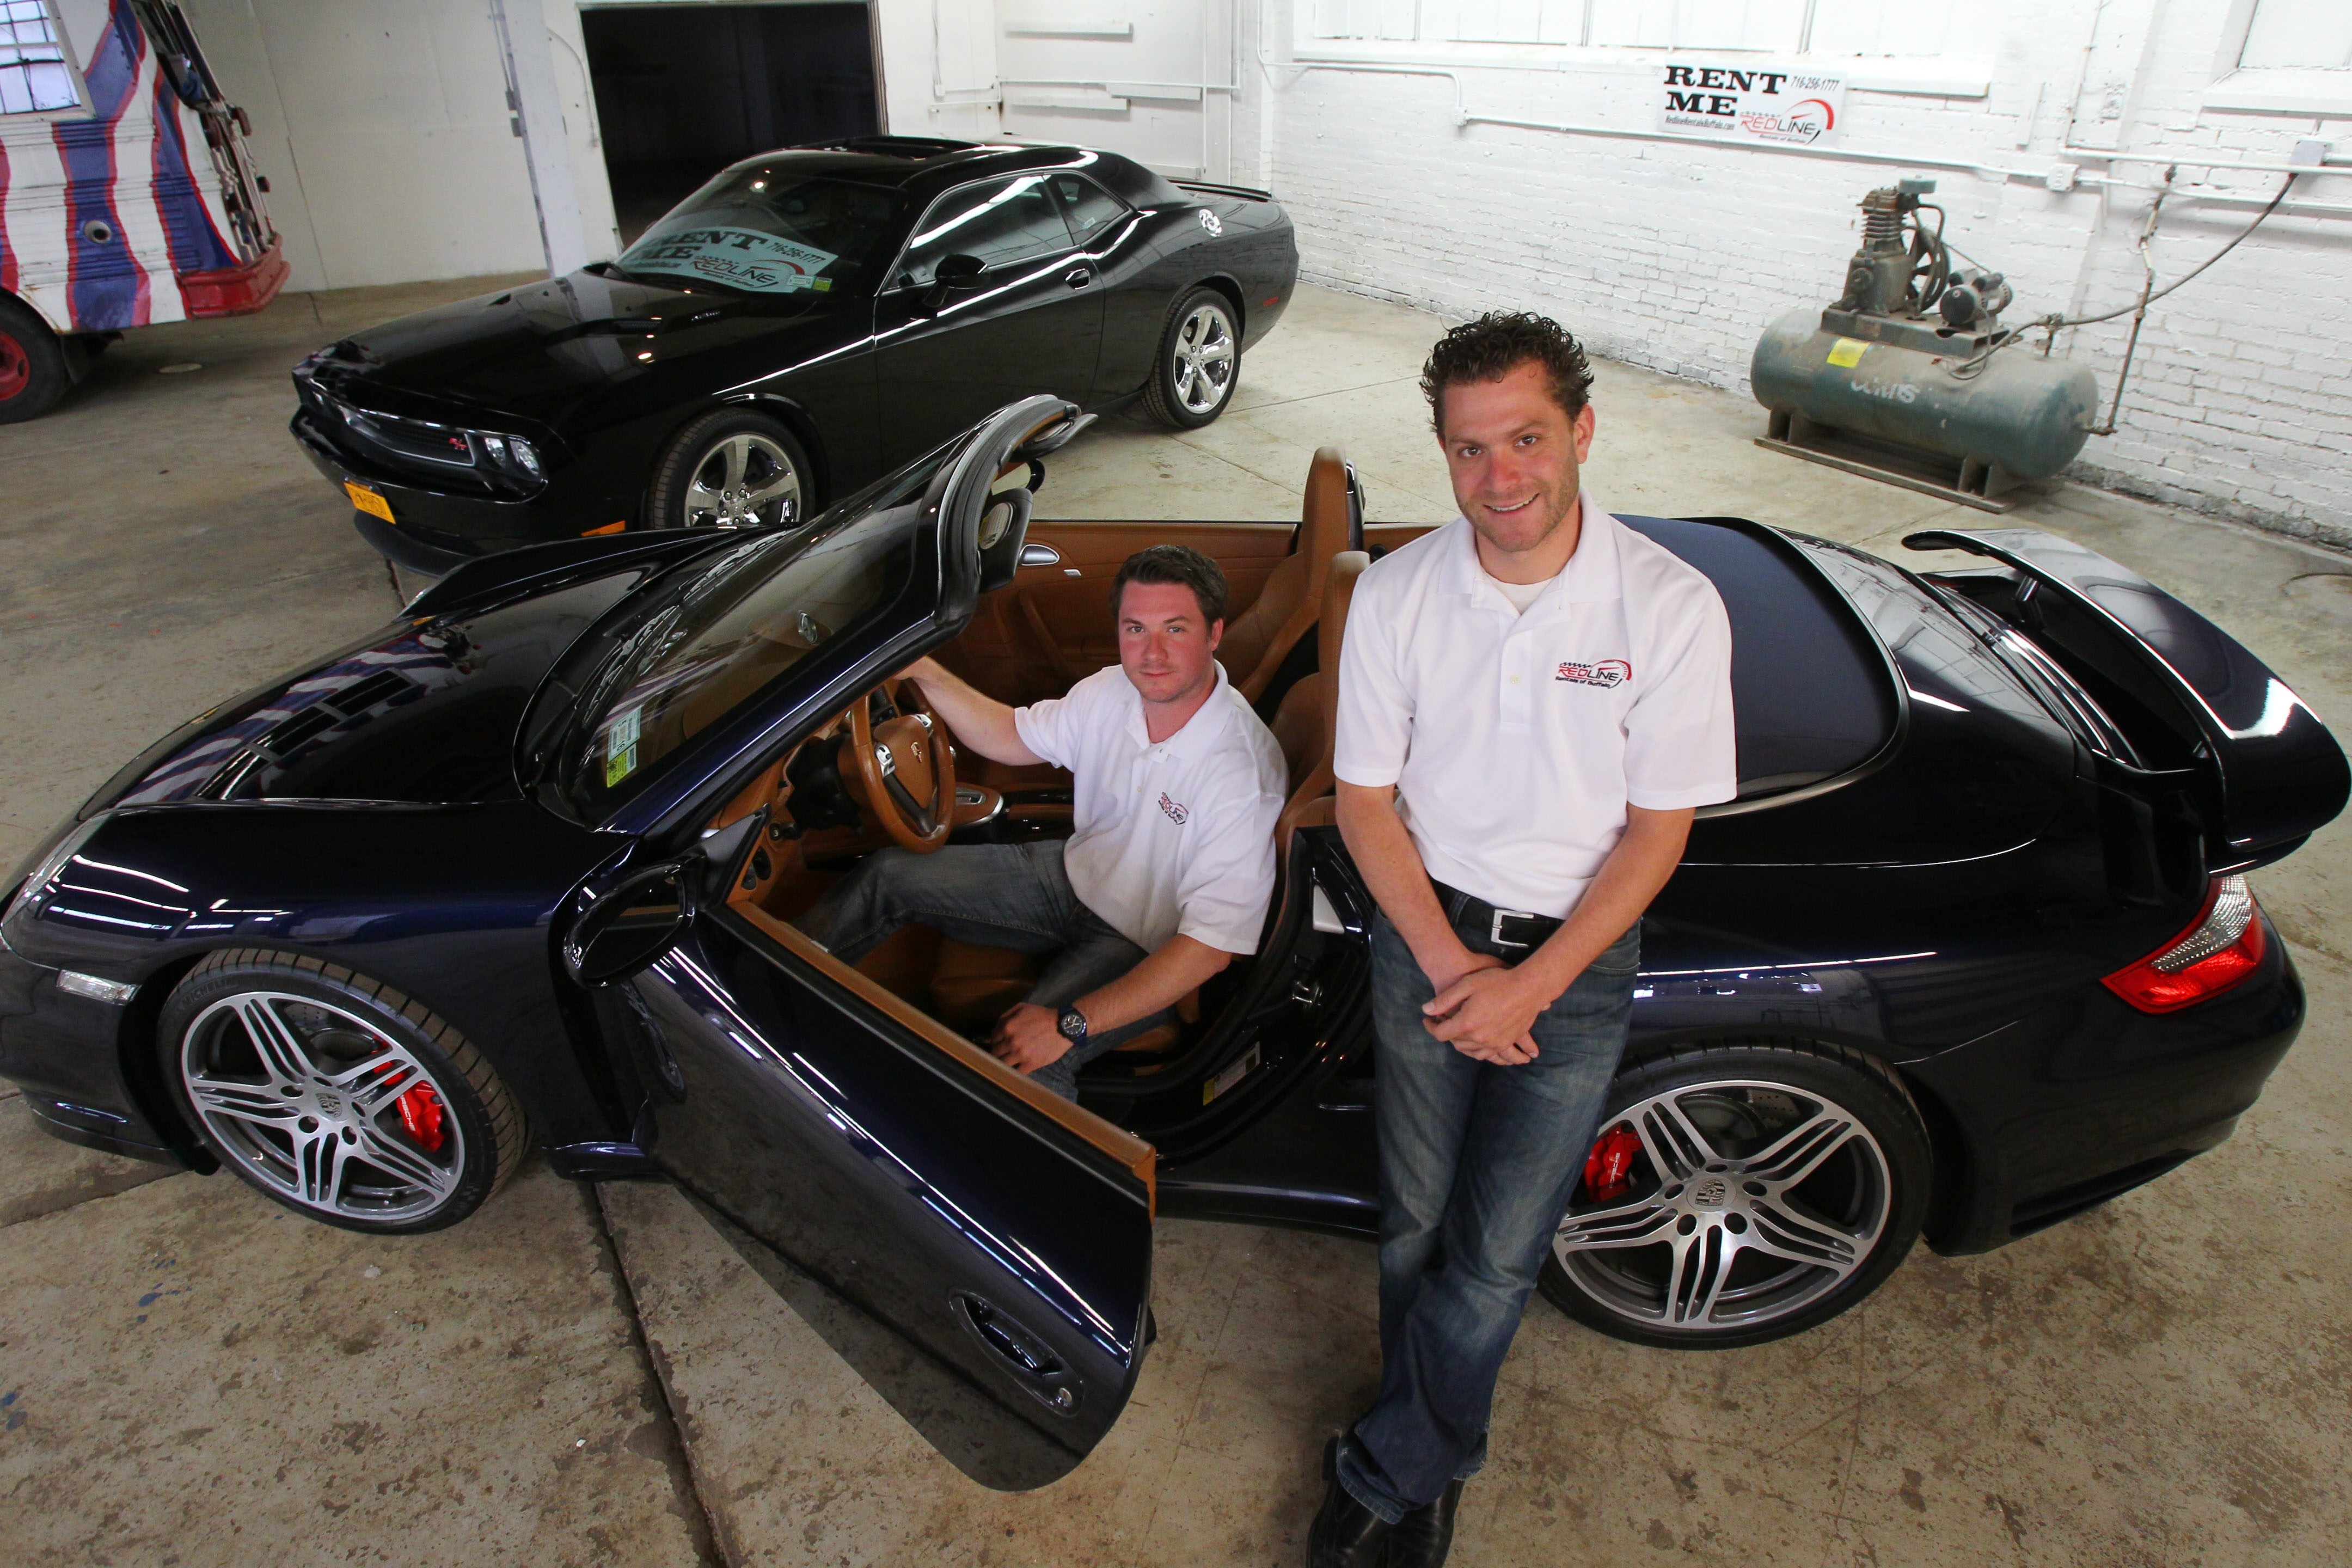 Redline Rentals co-owners Gregory Straus, left, and Matthew Bona give local drivers the opportunity to get behind the wheel of a 2008 Porsche, a 2011 Corvette or a 2012 Dodge Challenger .